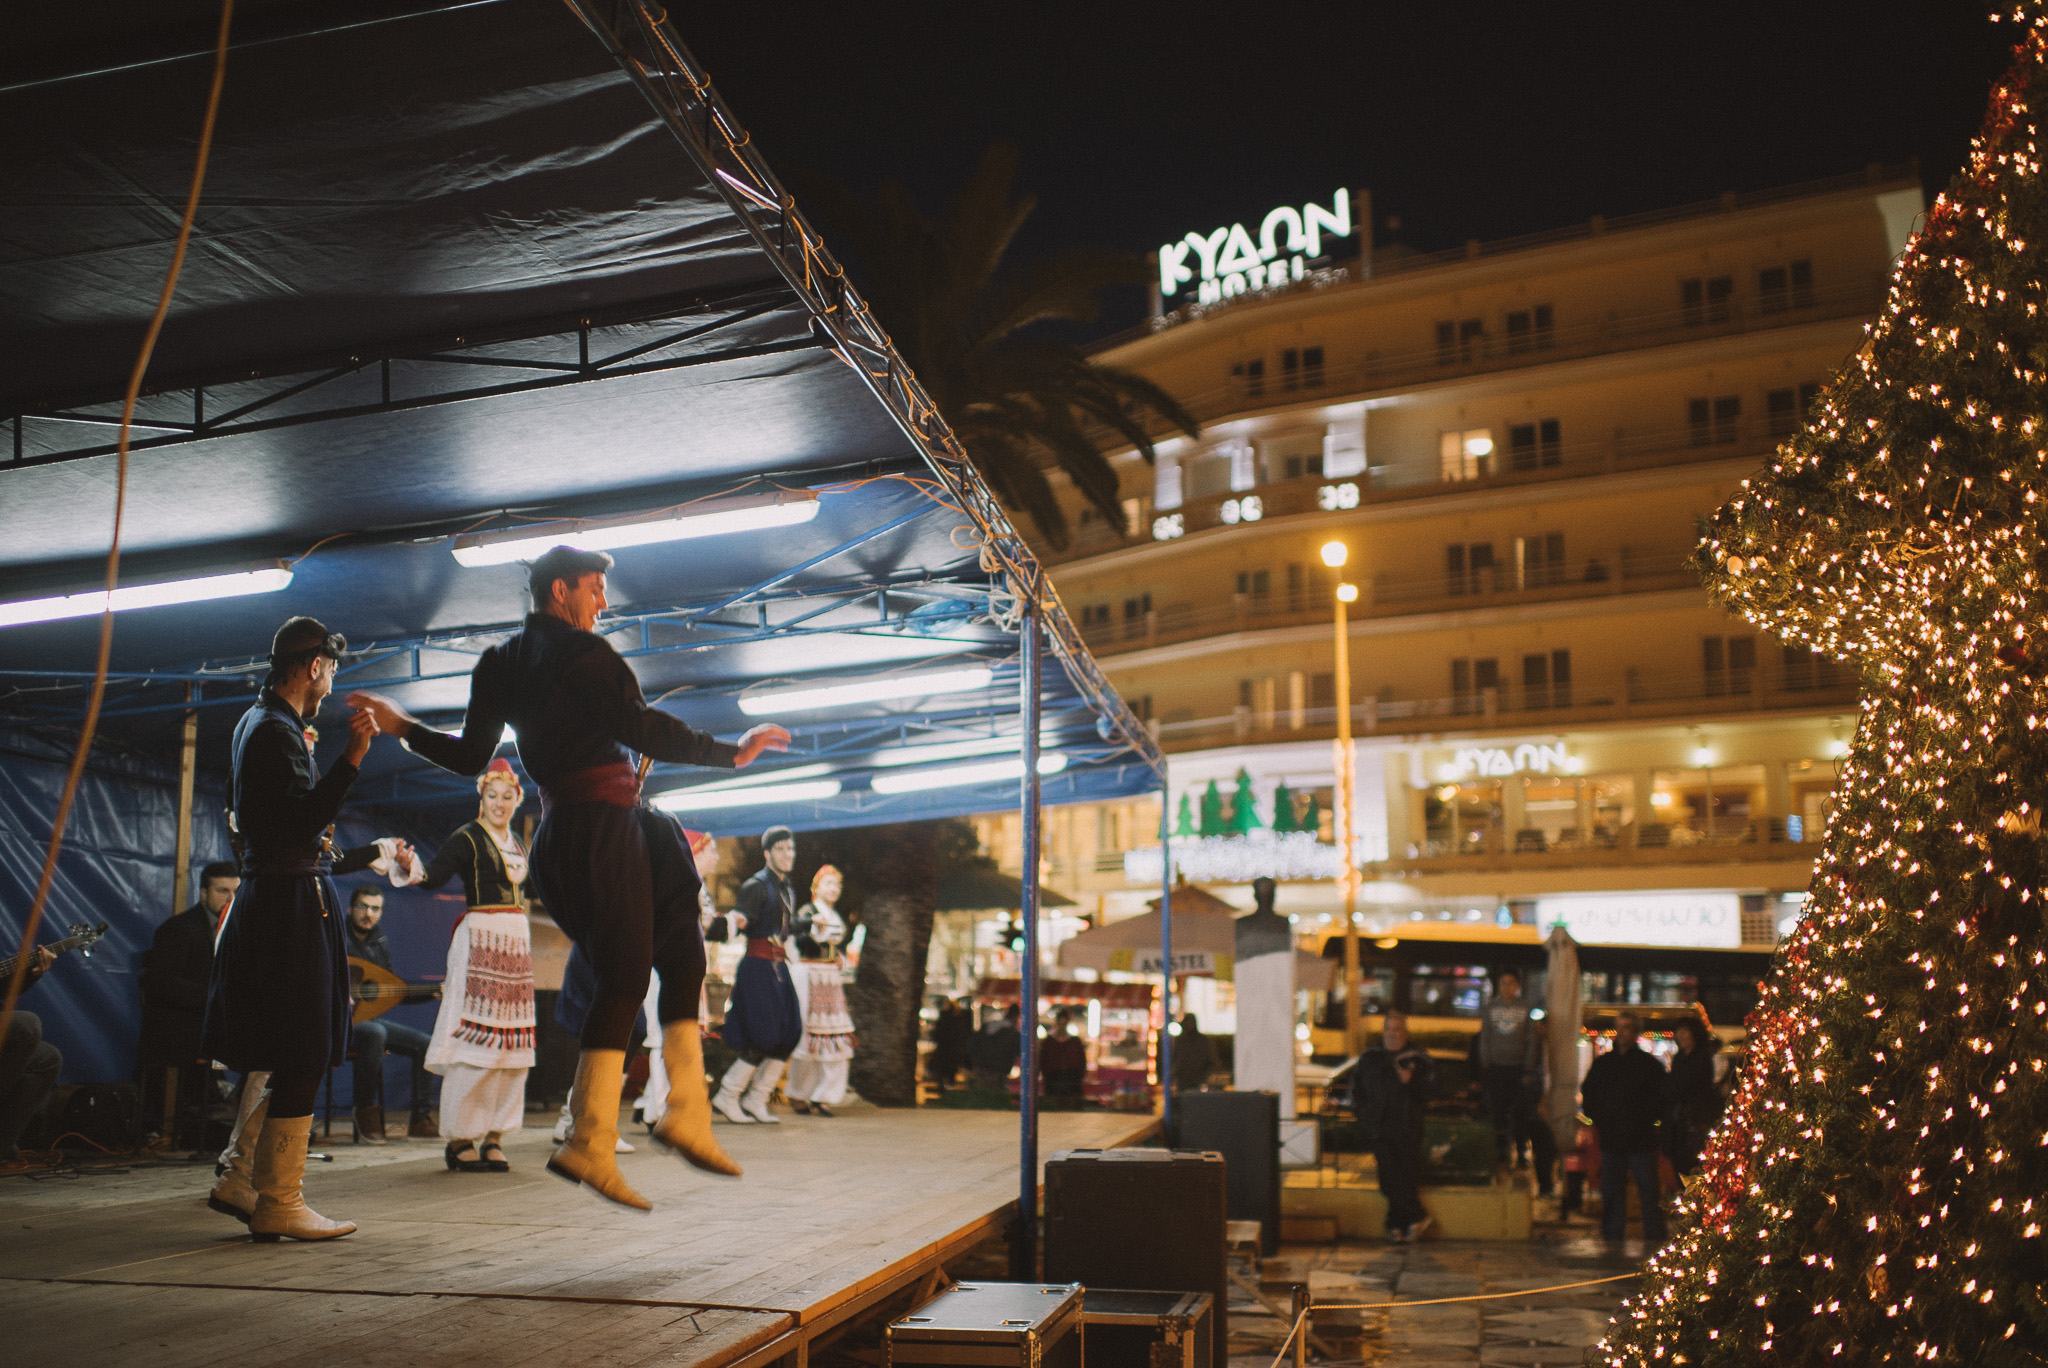 Cretan dancers in front of the old market. Just a few hours before the new year.